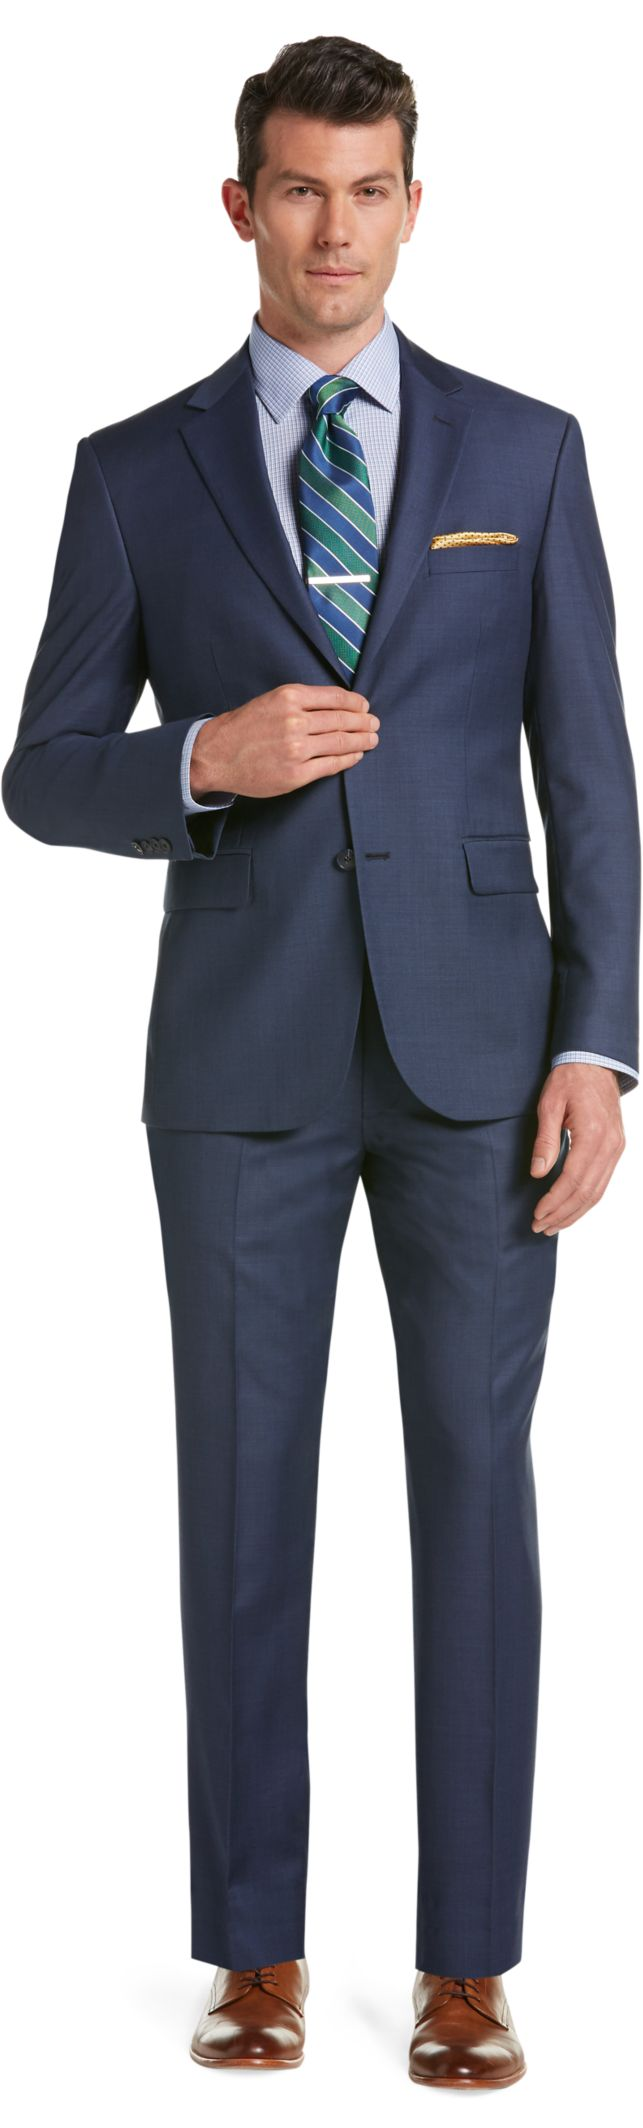 Traveler Collection Tailored Fit Suit